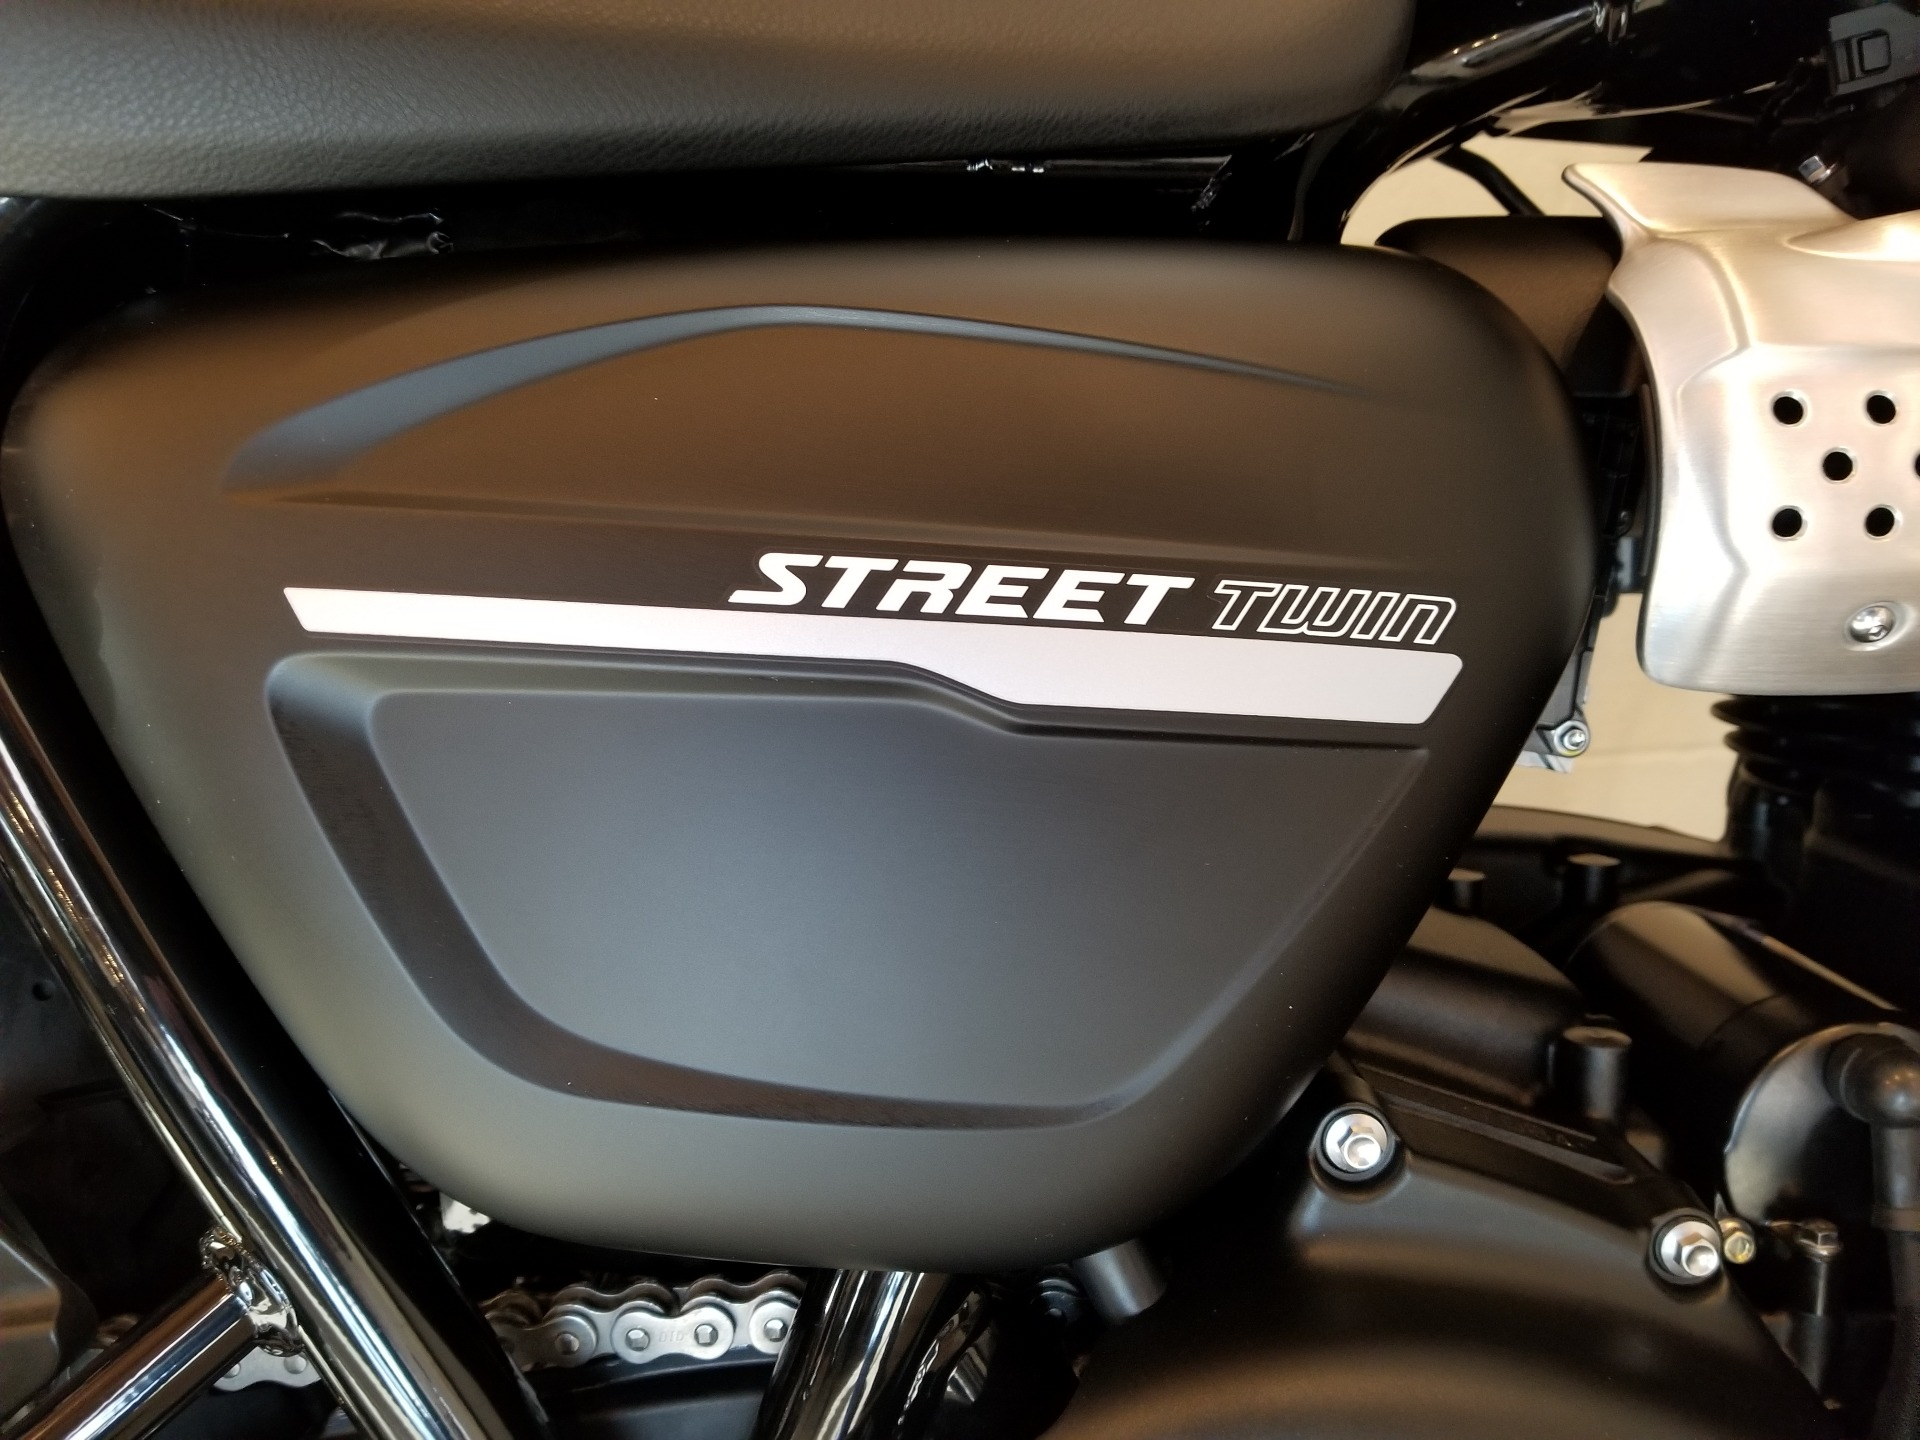 2019 Triumph Street Twin 900 in Port Clinton, Pennsylvania - Photo 7